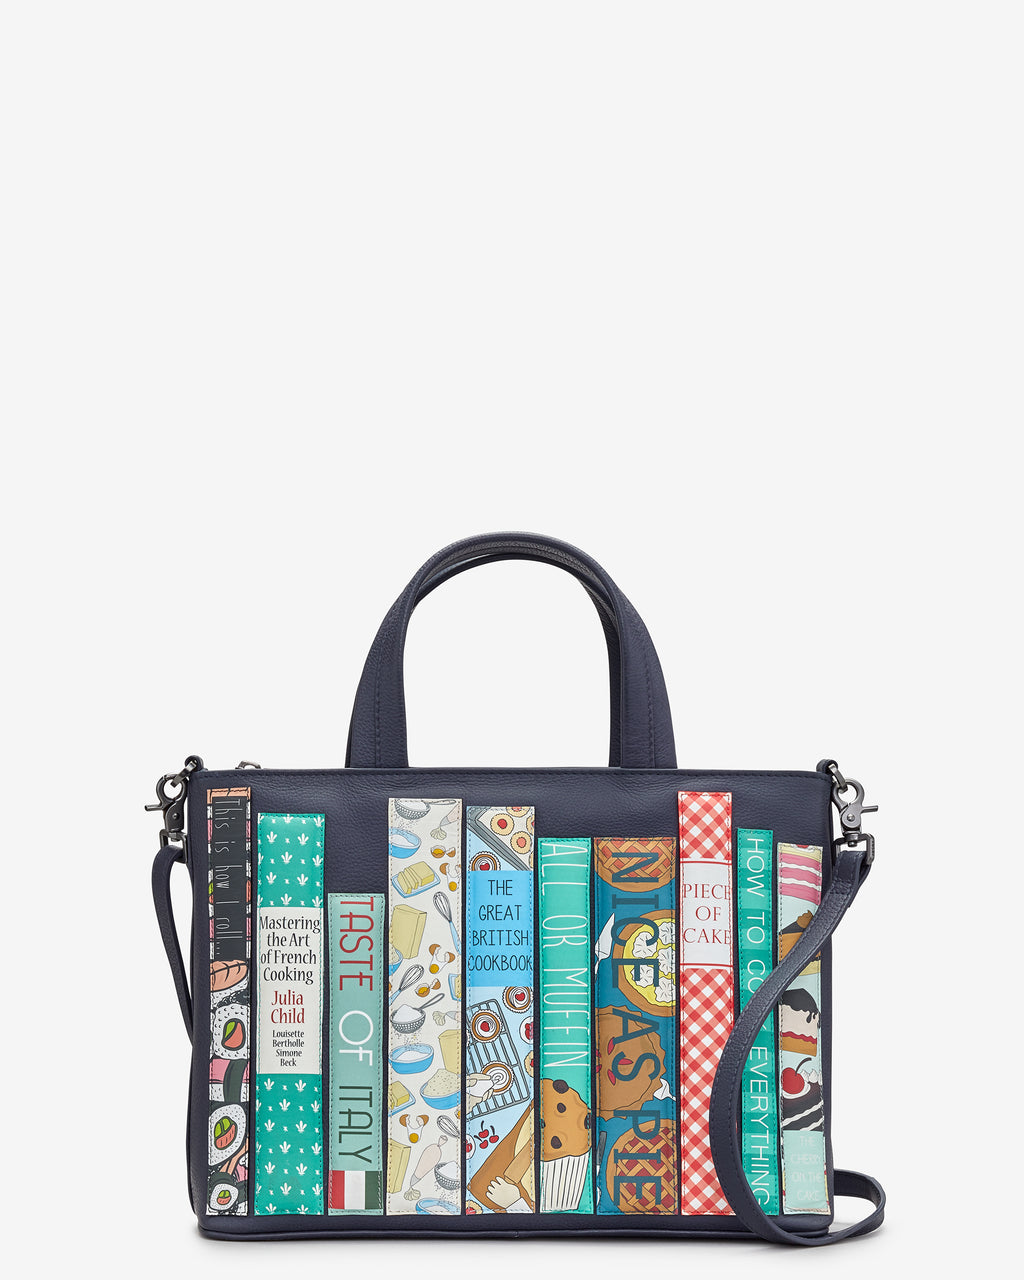 Cook Bookworm Library Leather Grab Bag